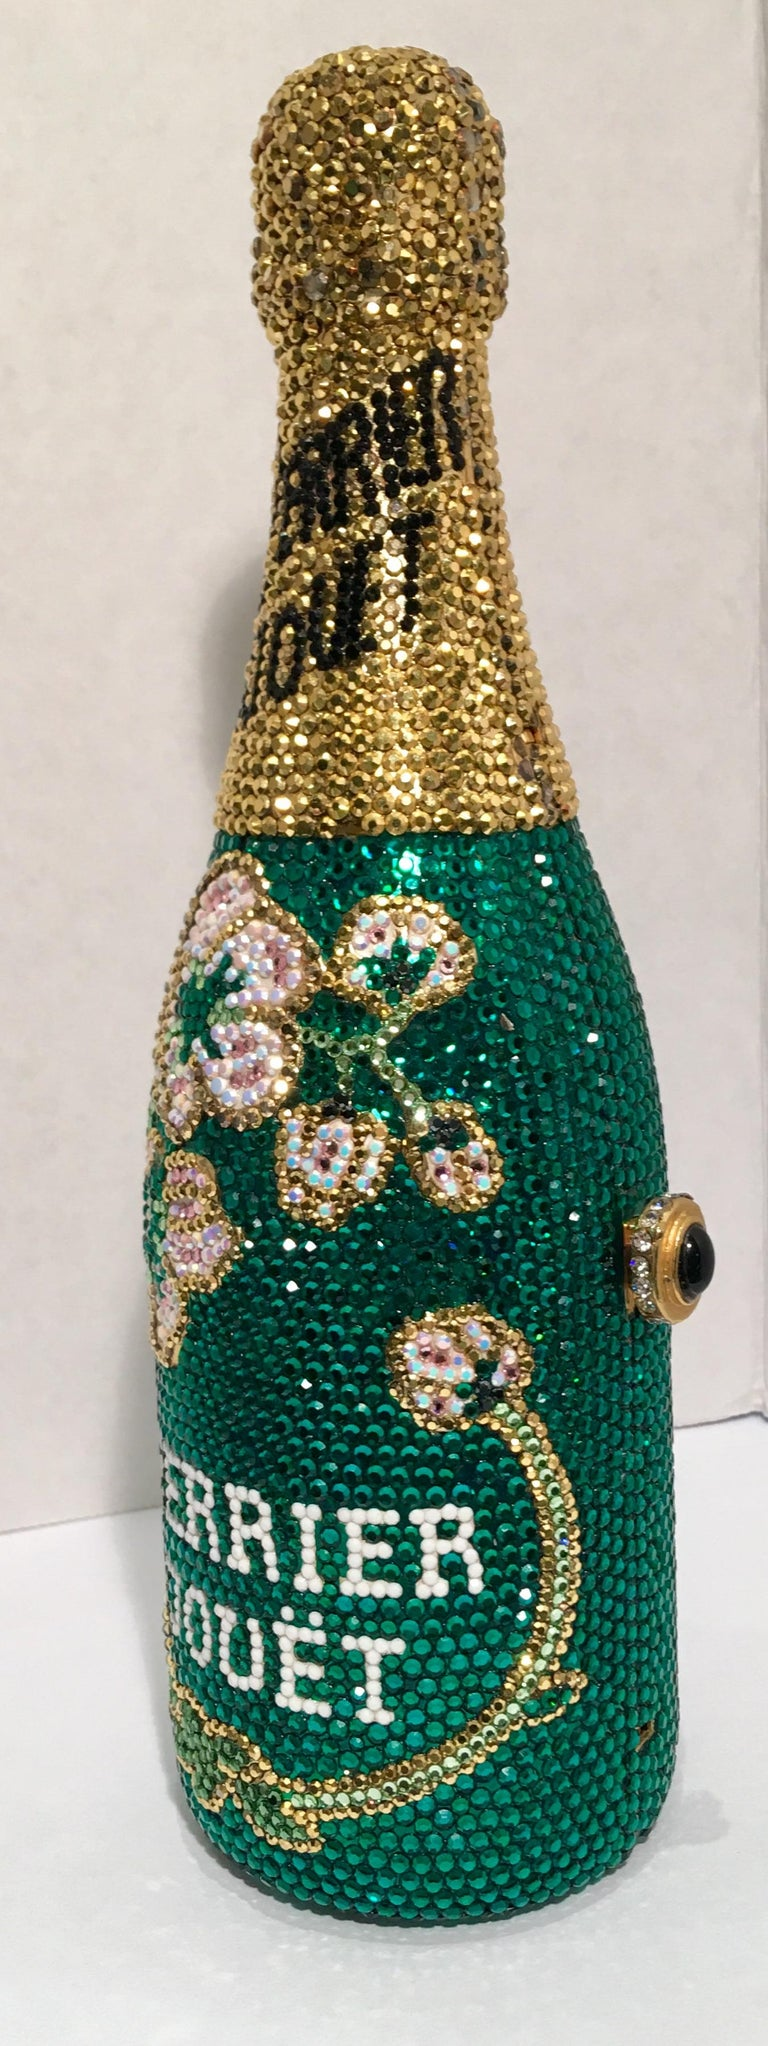 A limited-edition, signed and numbered, Swarovski crystal encrusted, gold-plated metal Perrier Jouet (Trademarked) French champagne split bottle shaped minaudière evening bag purse by Kathrine Baumann, who is the celebrated handbag maker to the